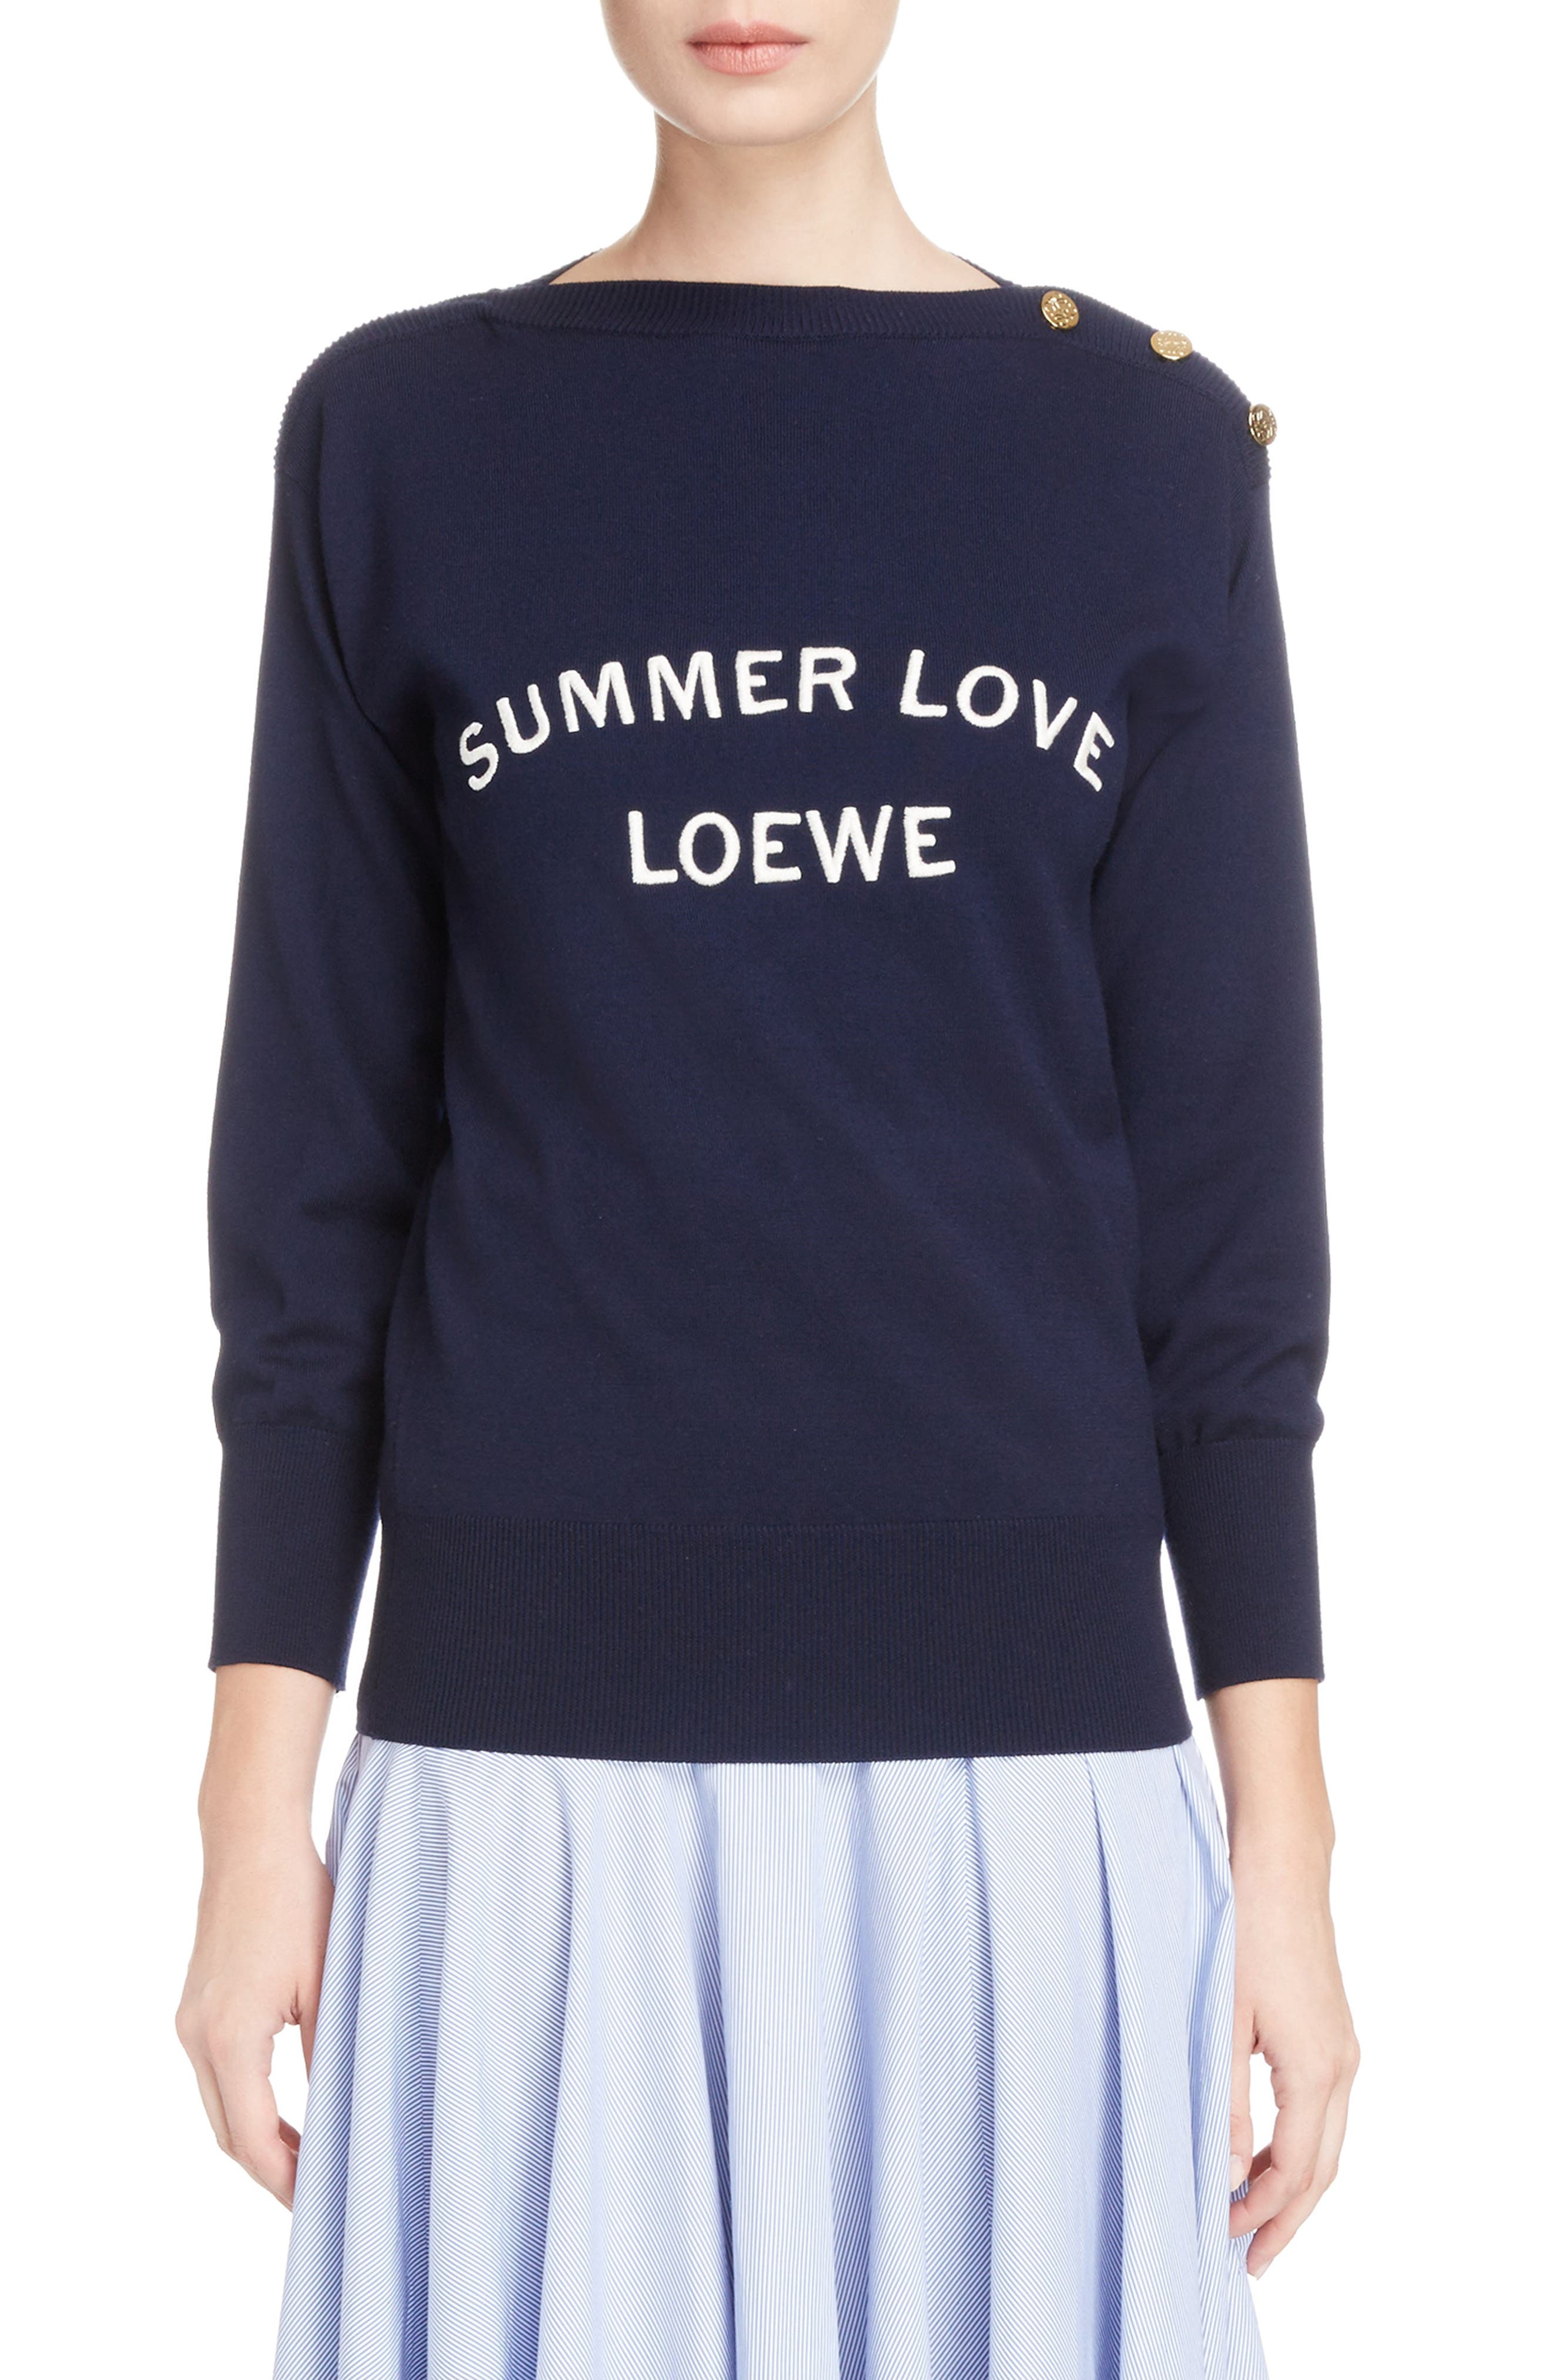 Loewe Summer Love Boatneck Sweater